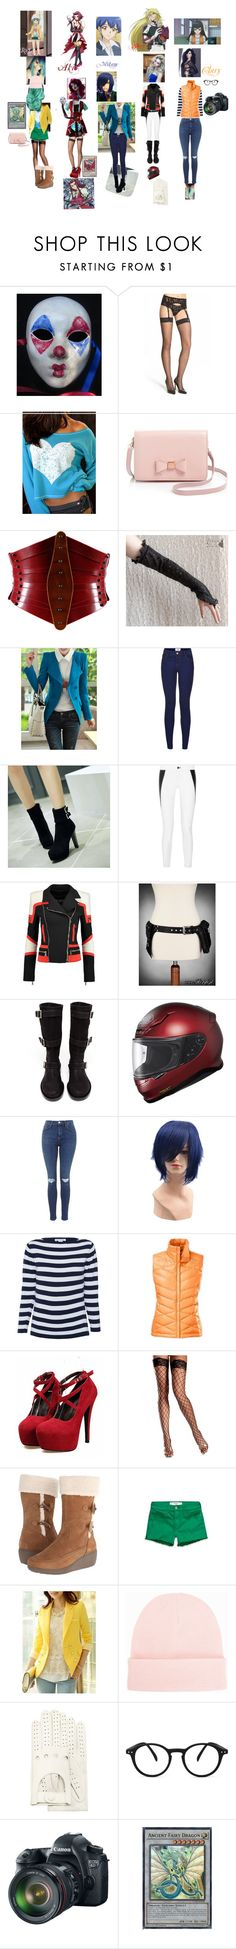 """Yu-Gi-Oh! 5DS Girls"" by ravenbiersack ❤ liked on Polyvore featuring beauty, Falke, Ted Baker, Úna Burke, New Look, Charming Kicks, rag & bone, Balmain, Ann Demeulemeester and The North Face"